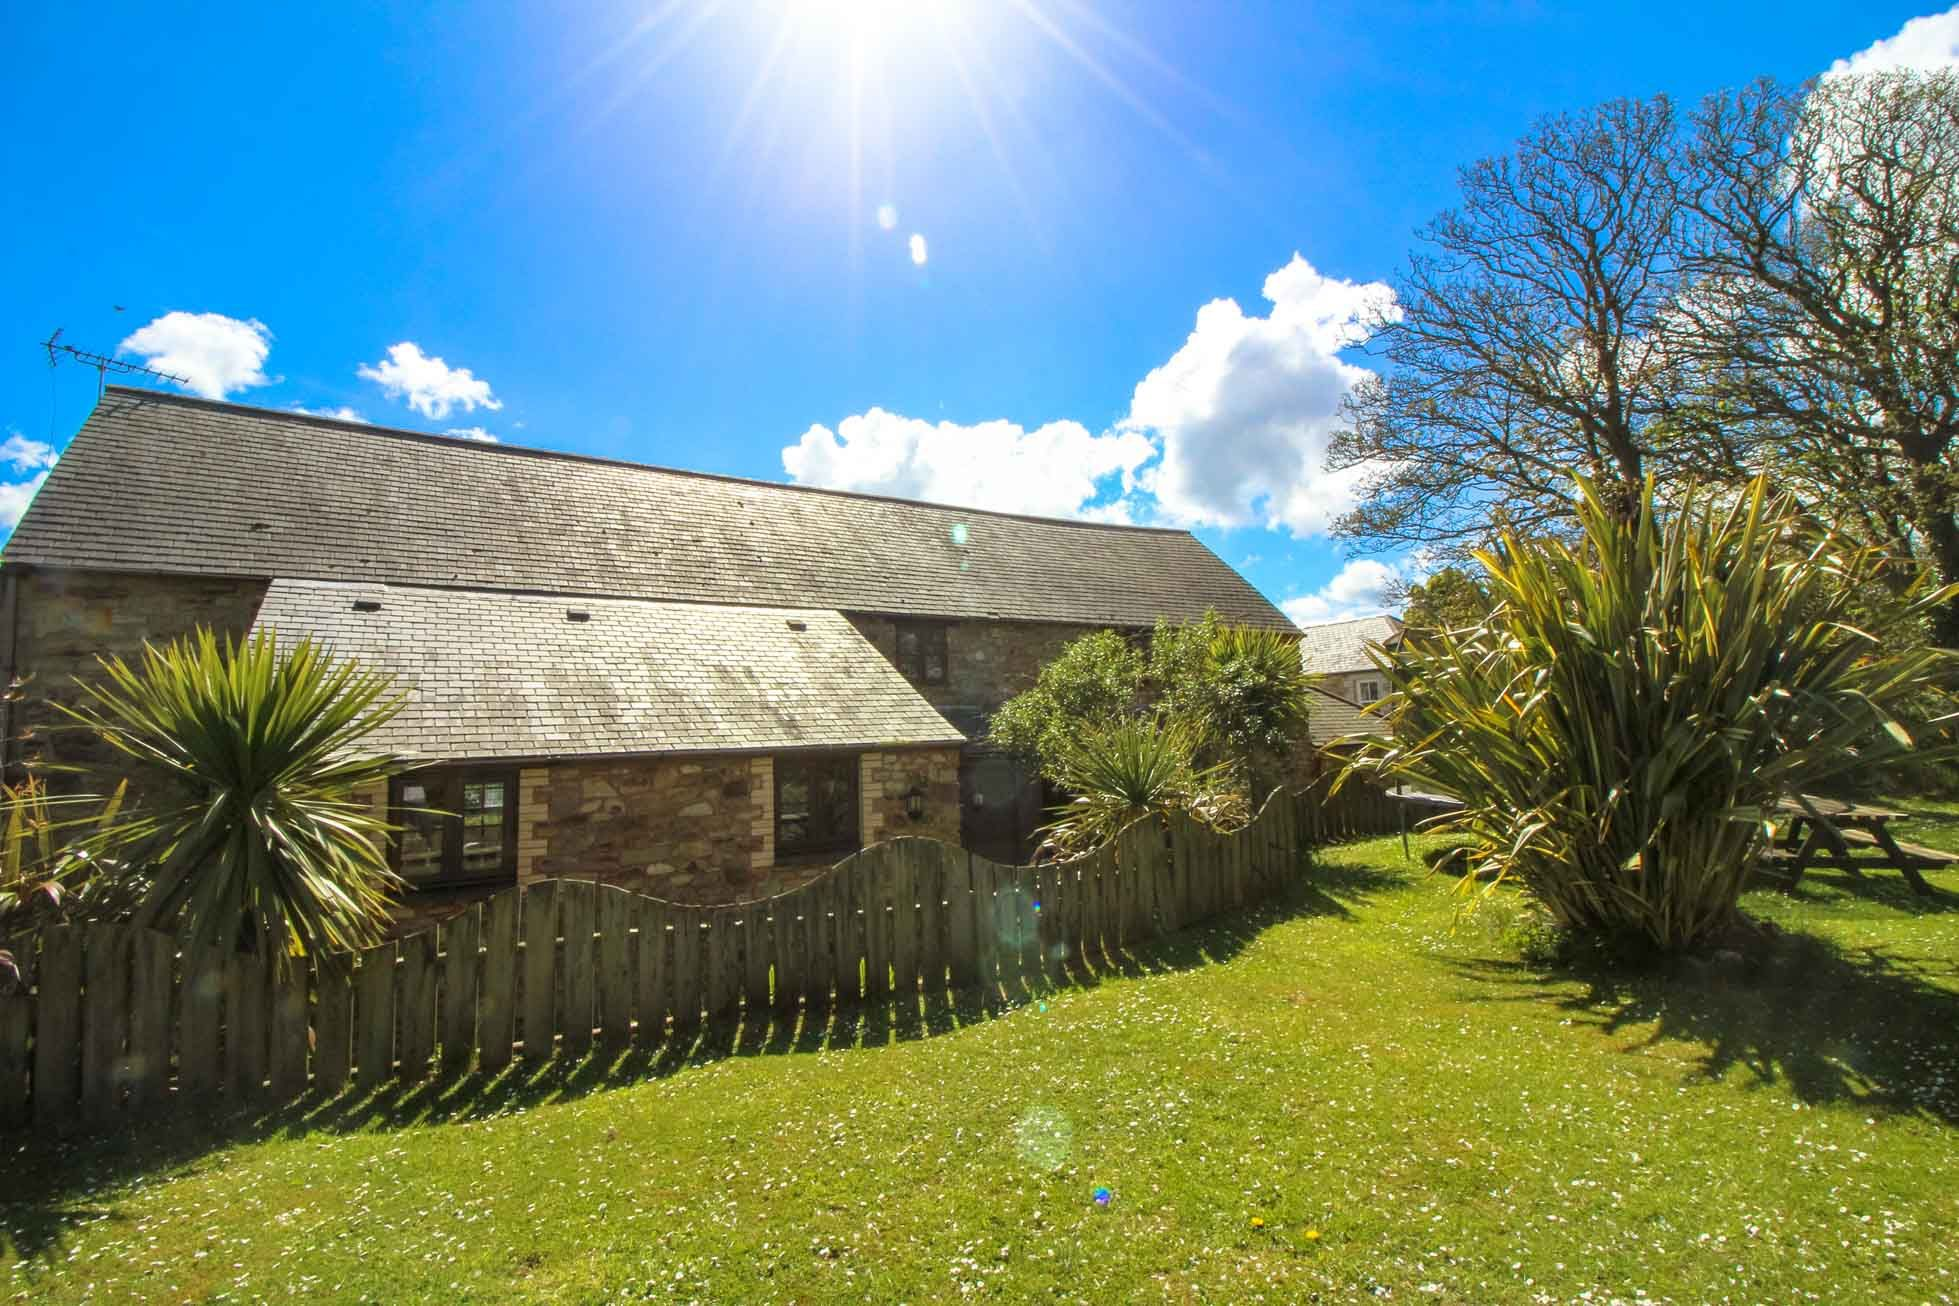 The collectors olivey place mylor bridge nr falmouth cornwall uk - View More Images